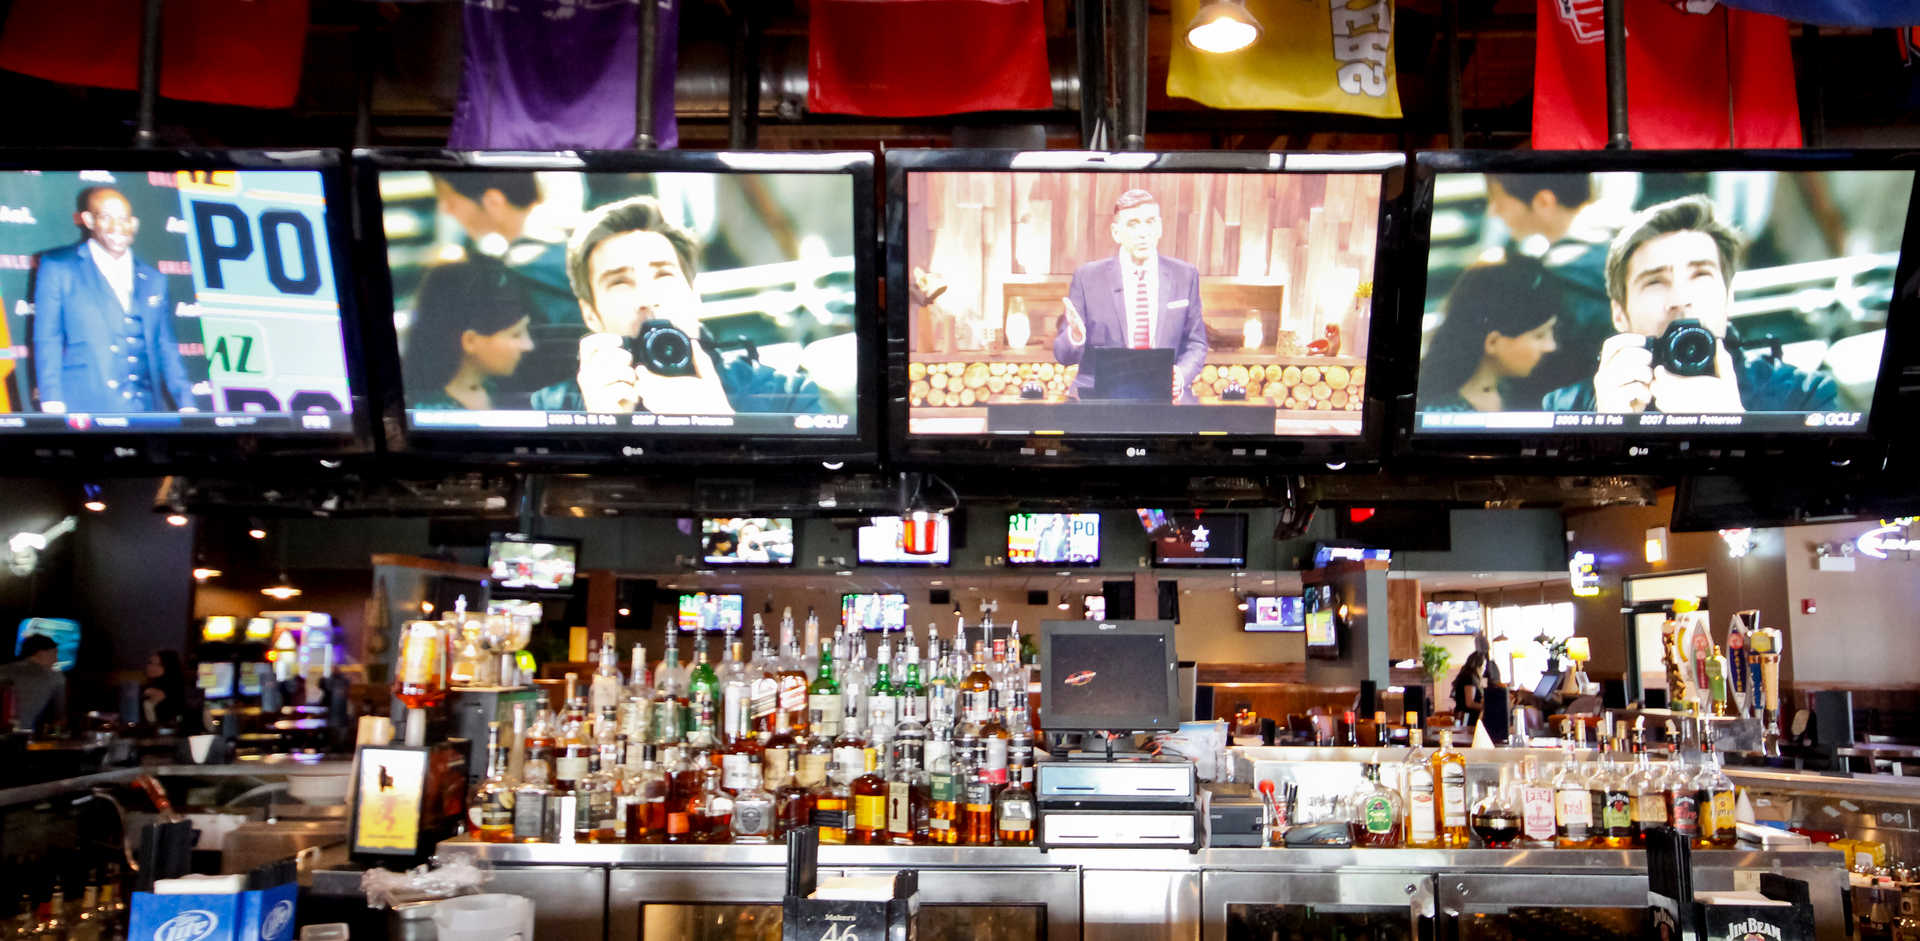 Real Time Sports Bar and Grill TVs and Bar view 2